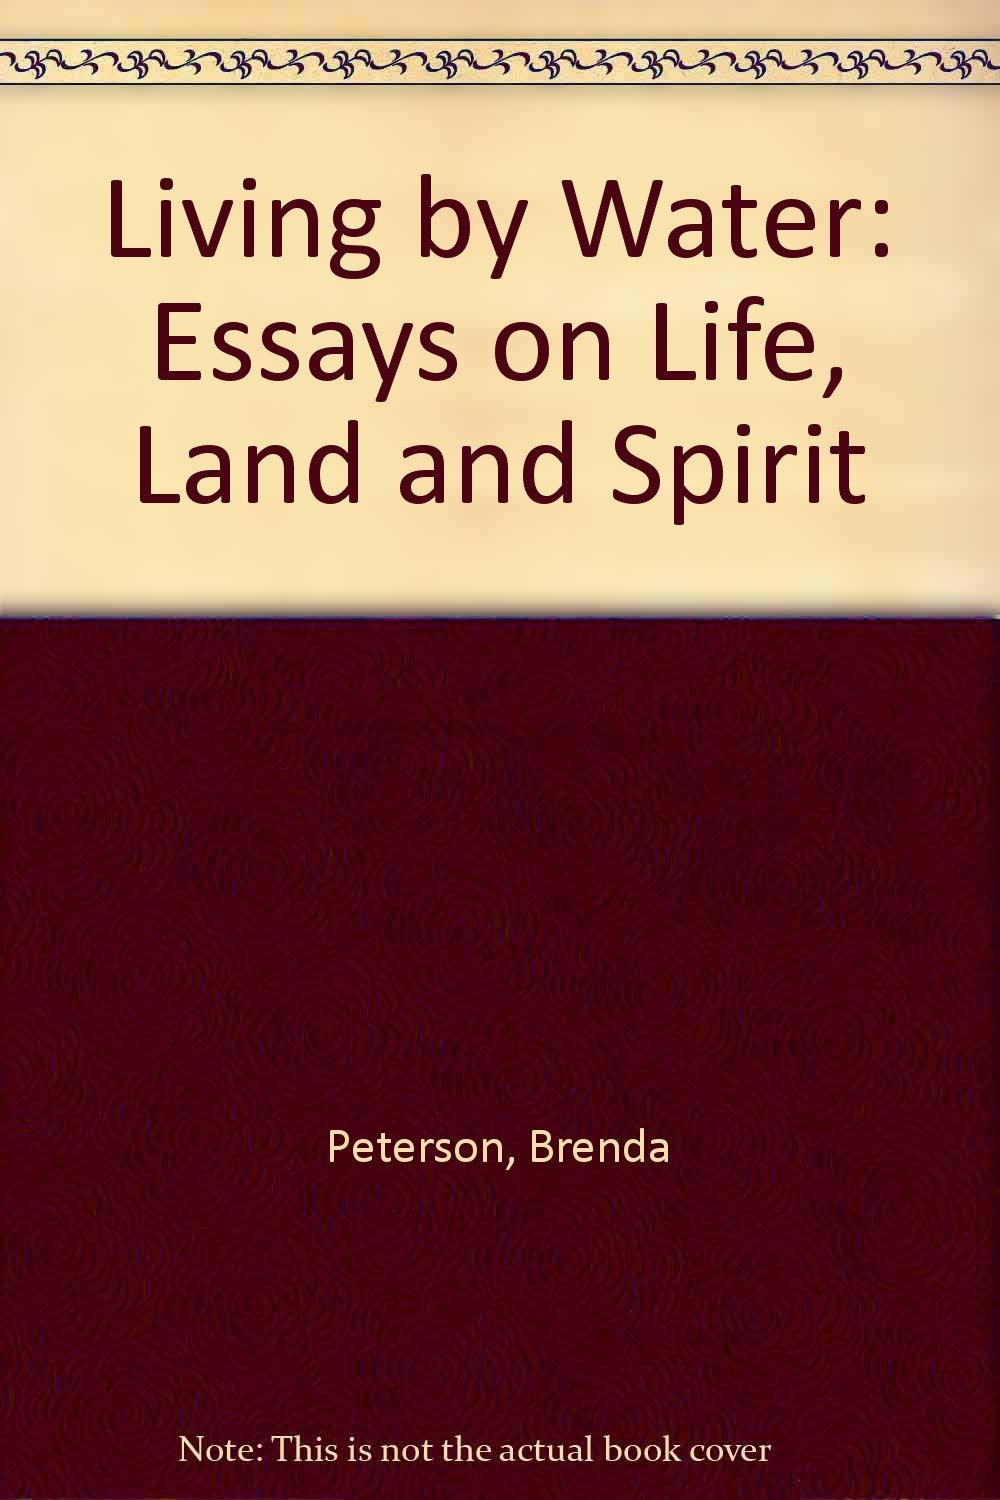 Living by Water: Essays on Life, Land and Spirit, Peterson, Brenda